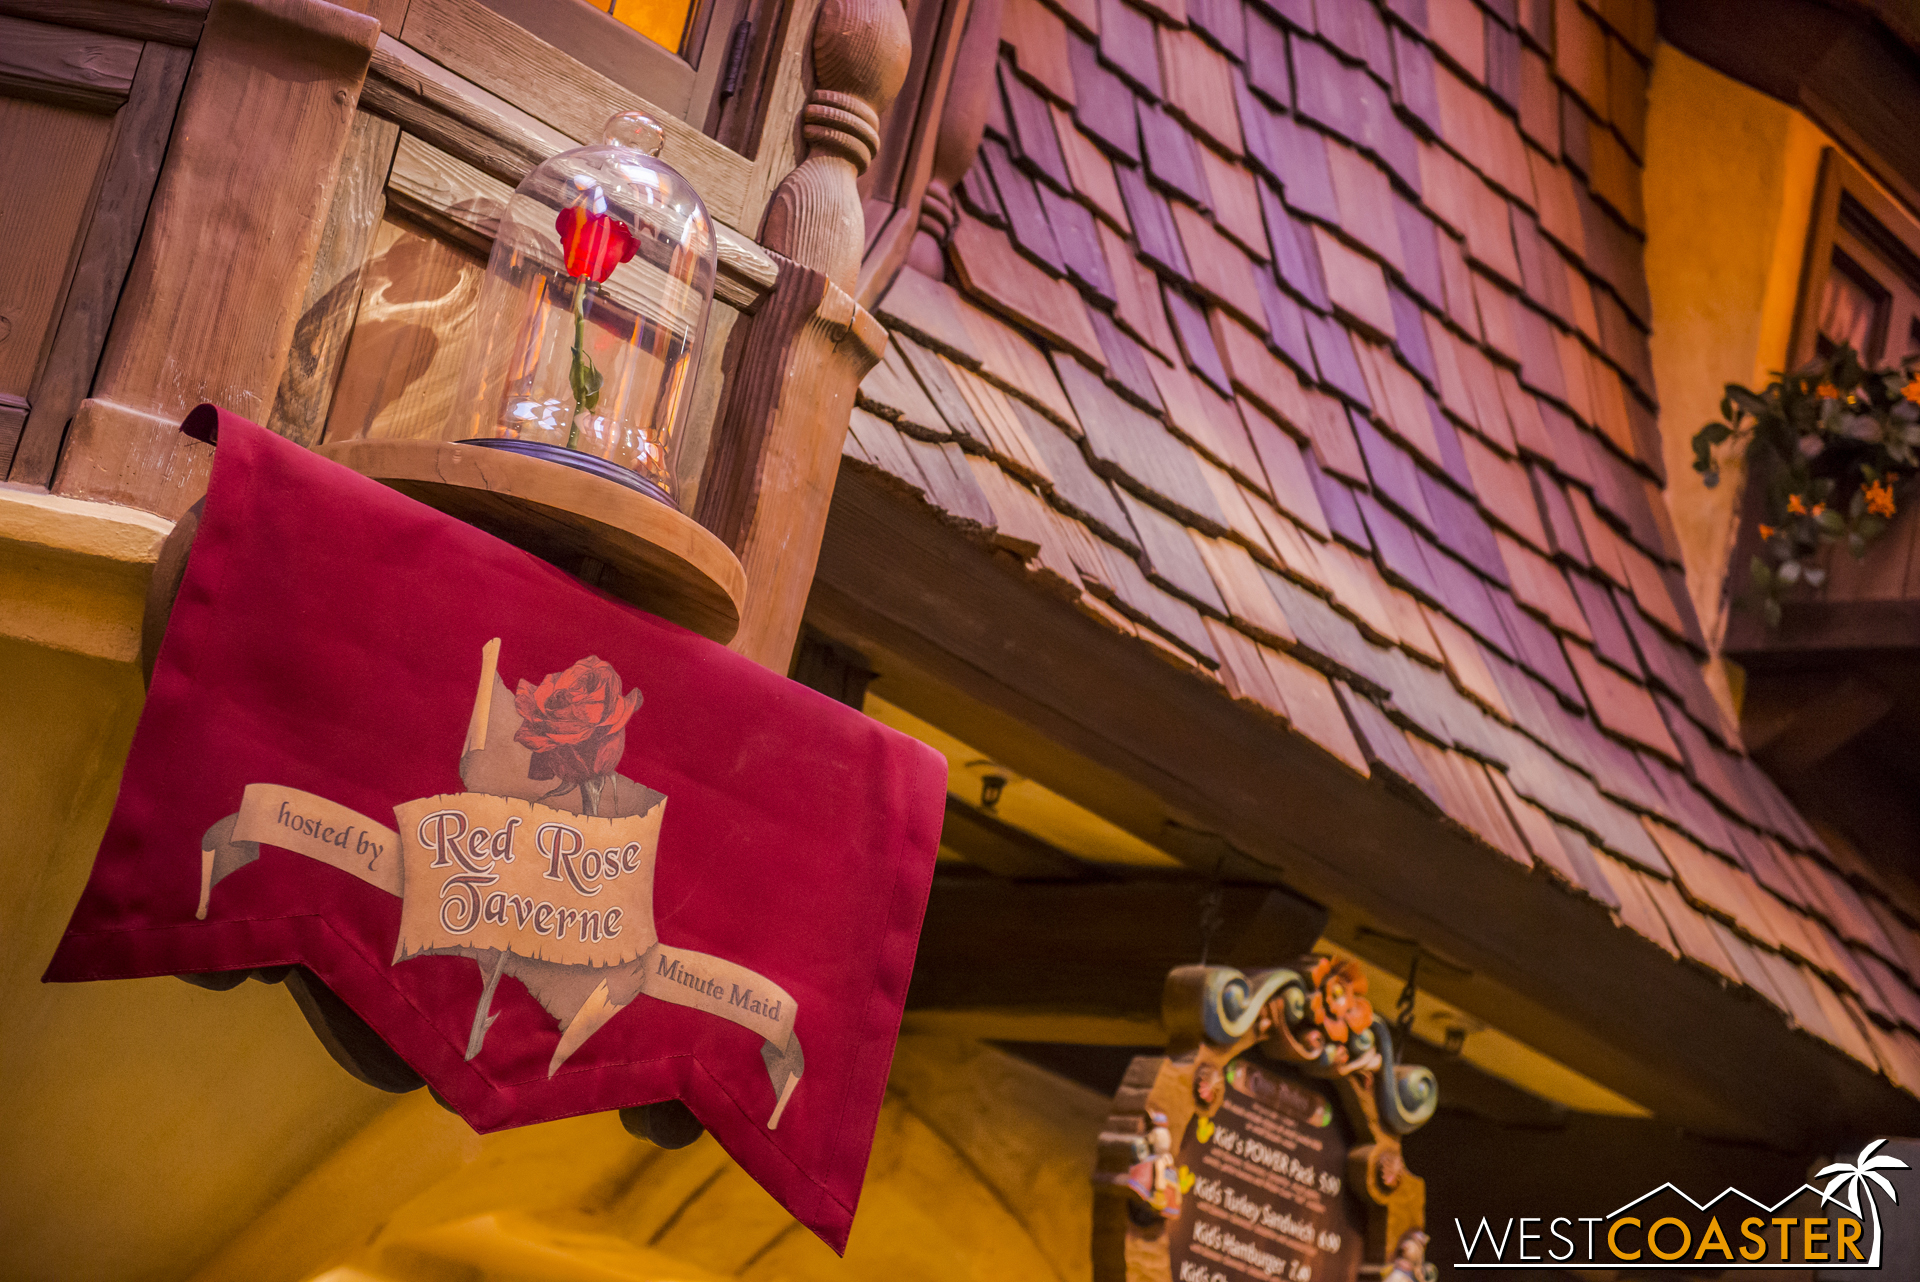 The Beast's red rose occupies the shelf where Pinocchio normally sits.